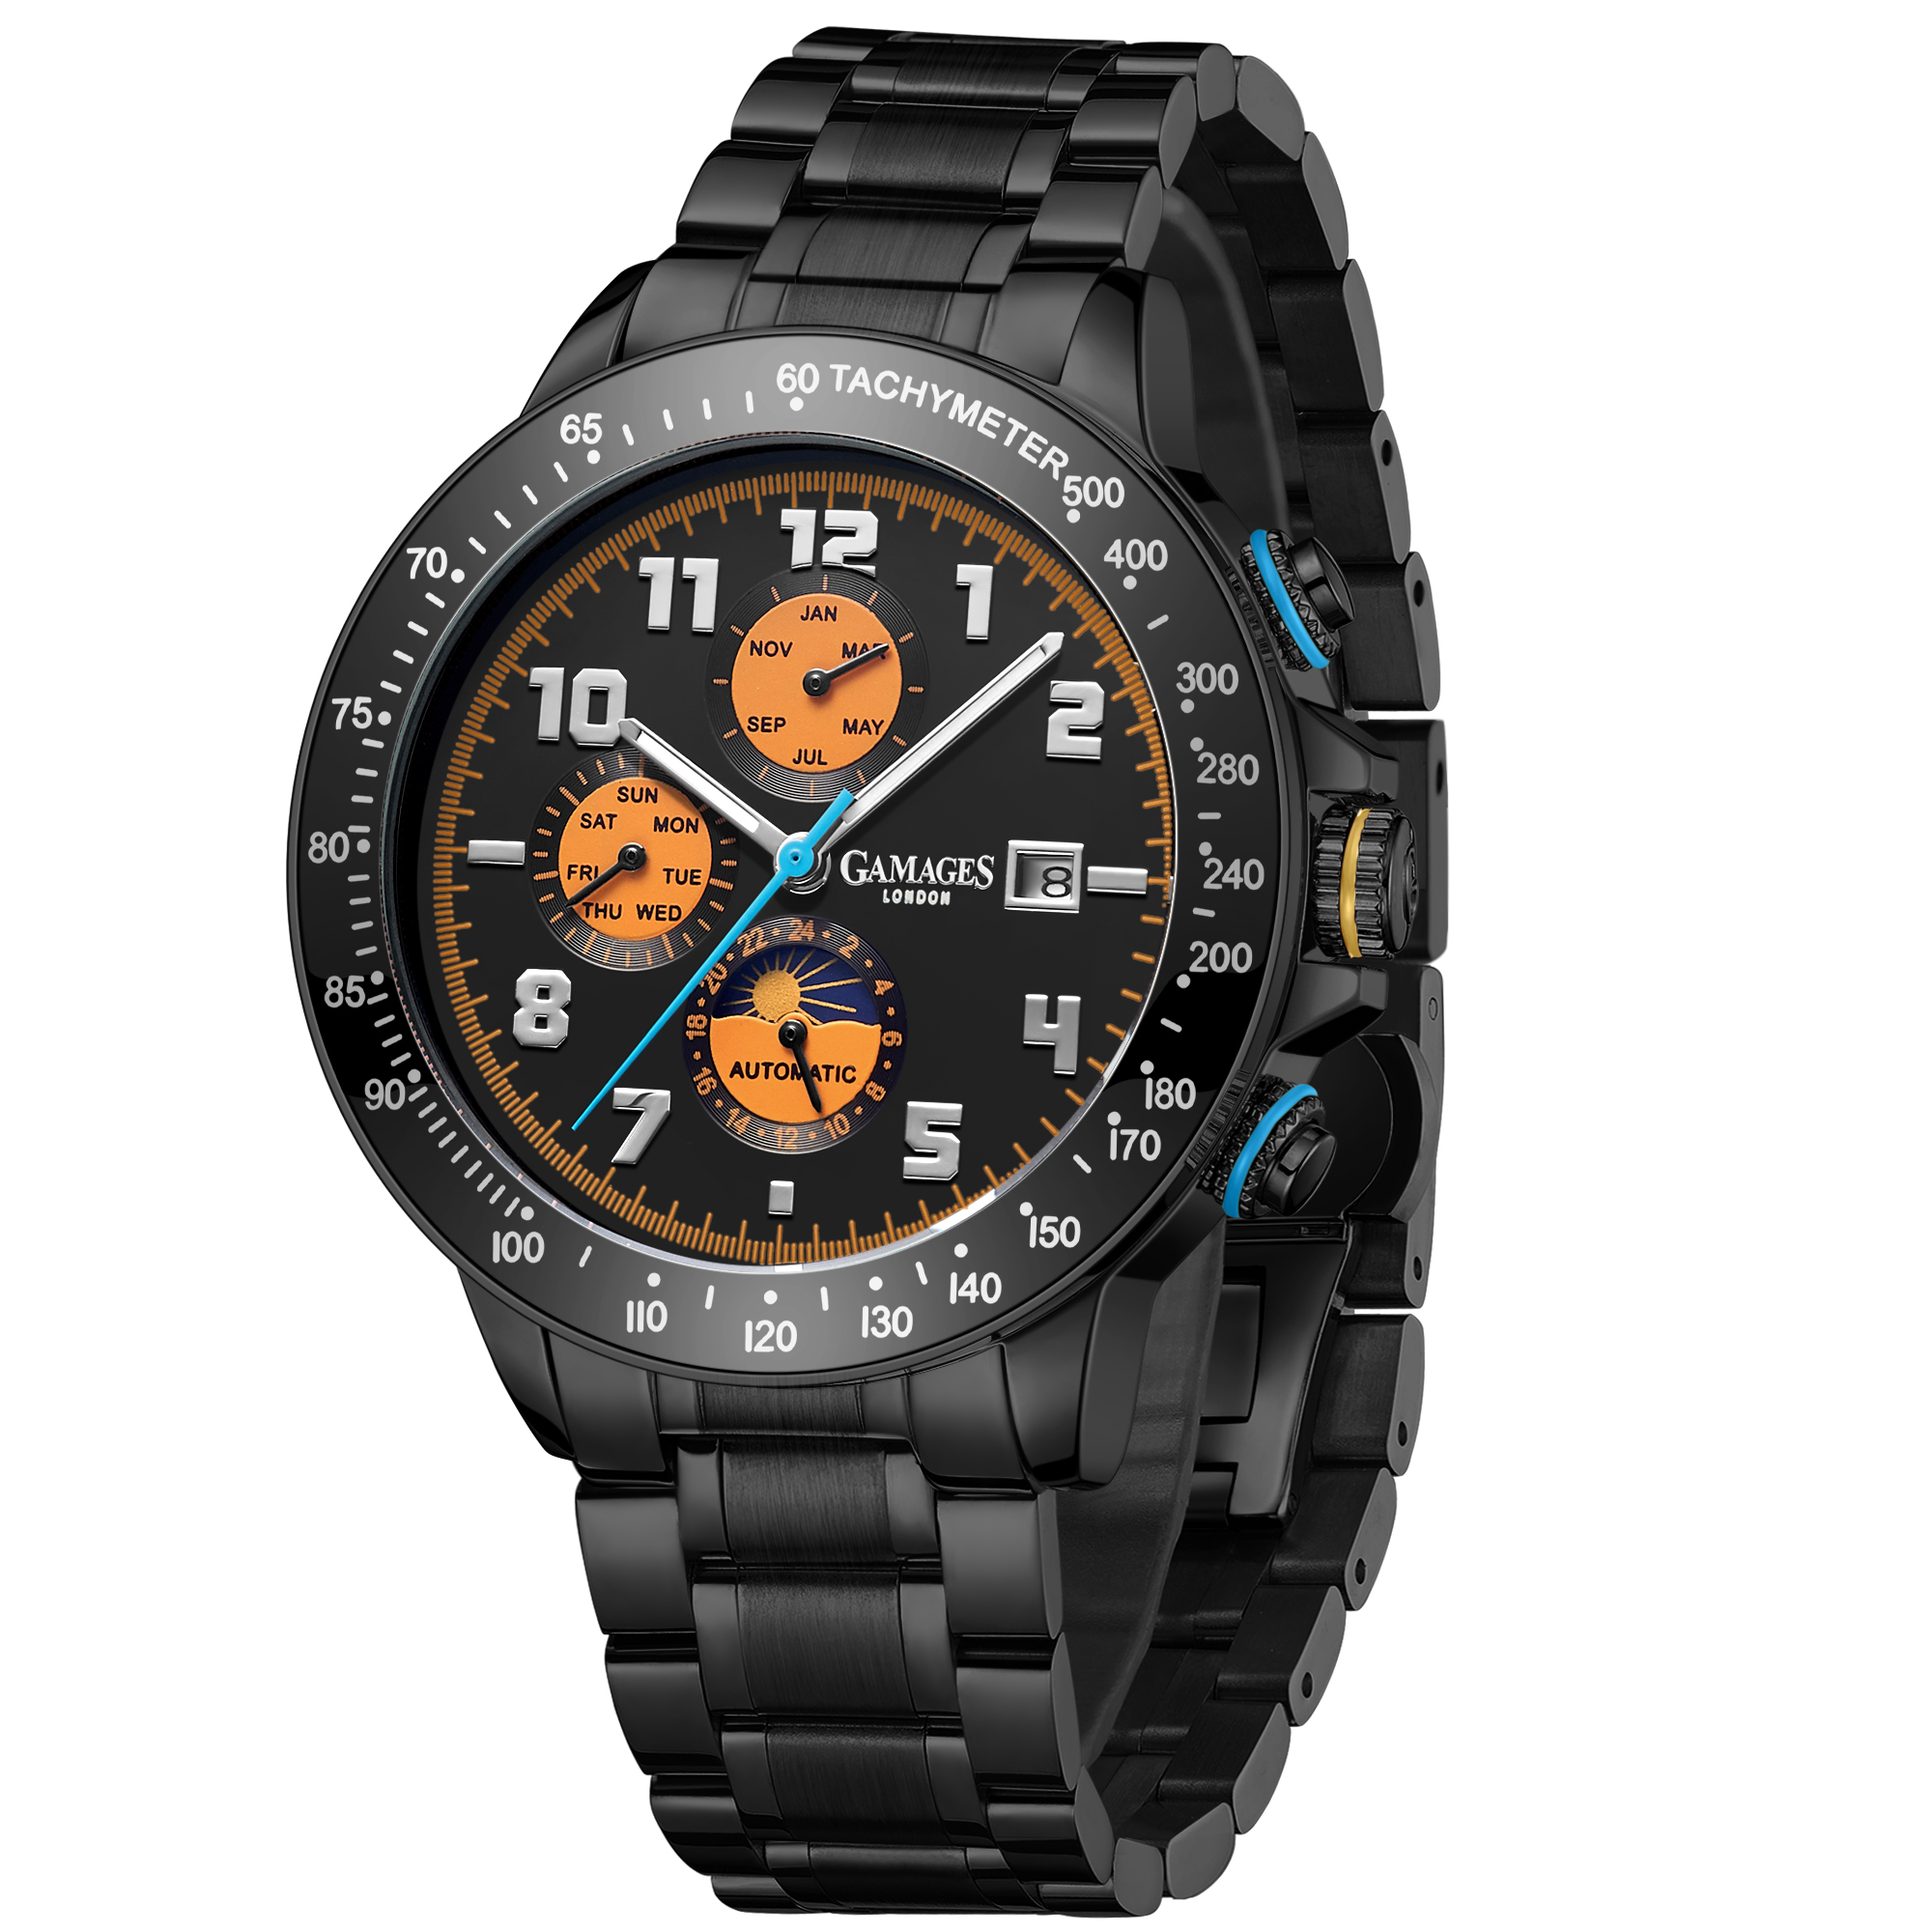 Ltd Edition Hand Assembled Gamages Alpha Automatic Black IP – 5 Year Warranty & Free Delivery - Image 3 of 5